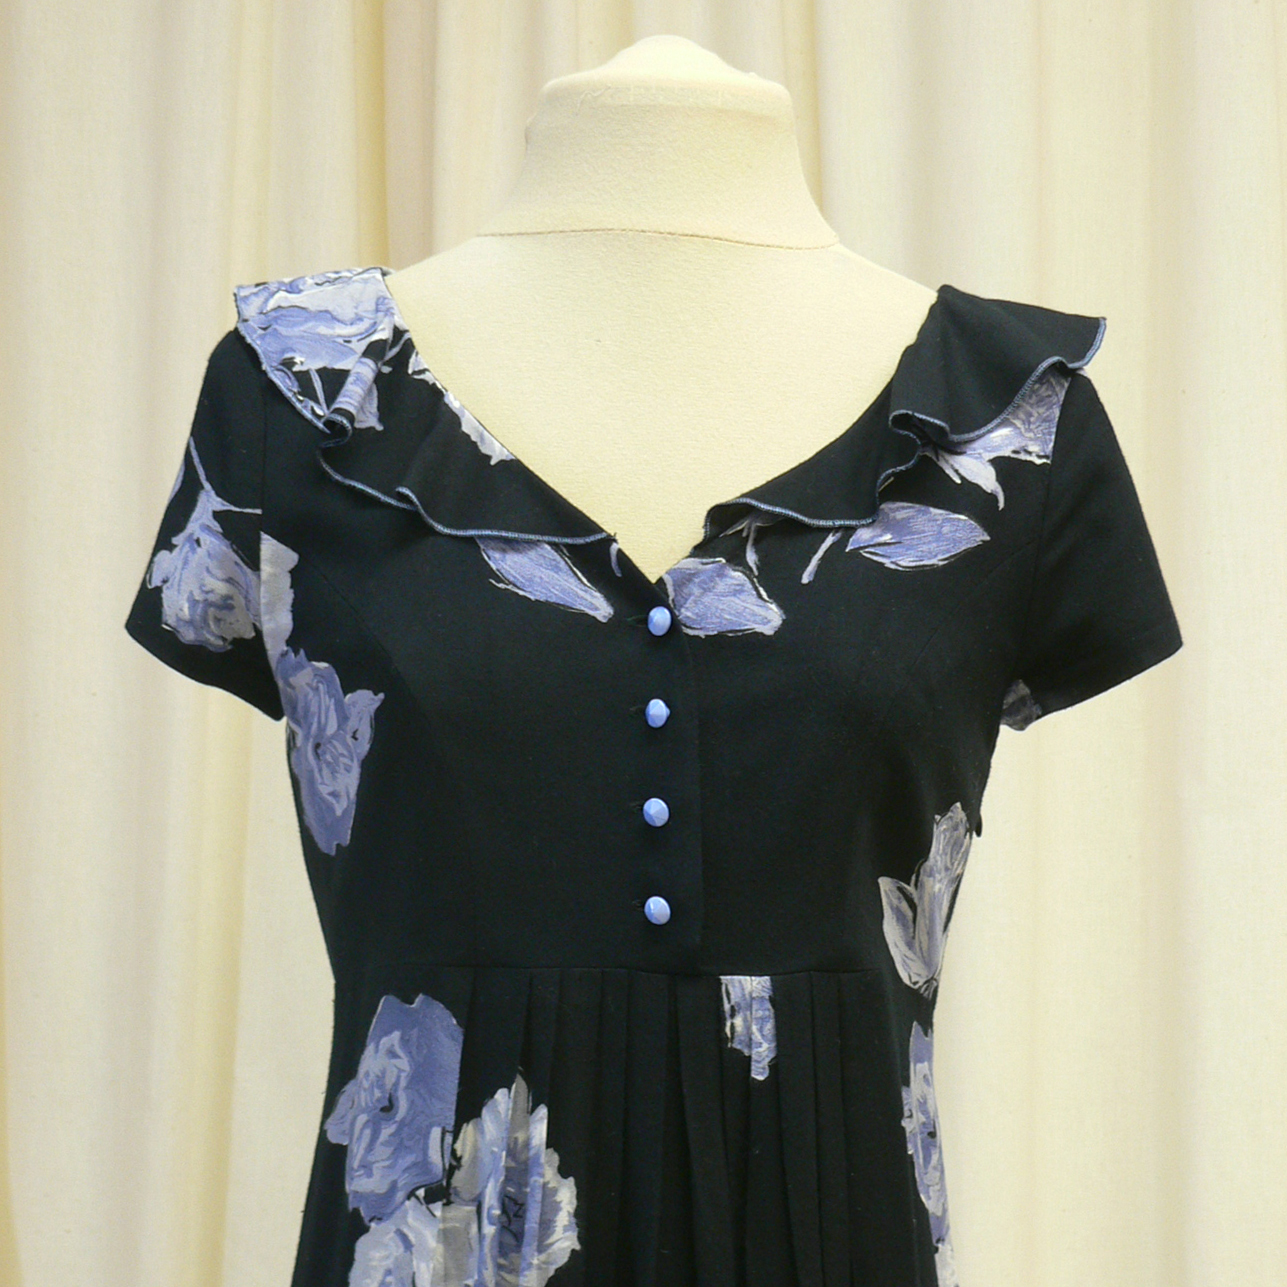 casual026_front_detail.jpg